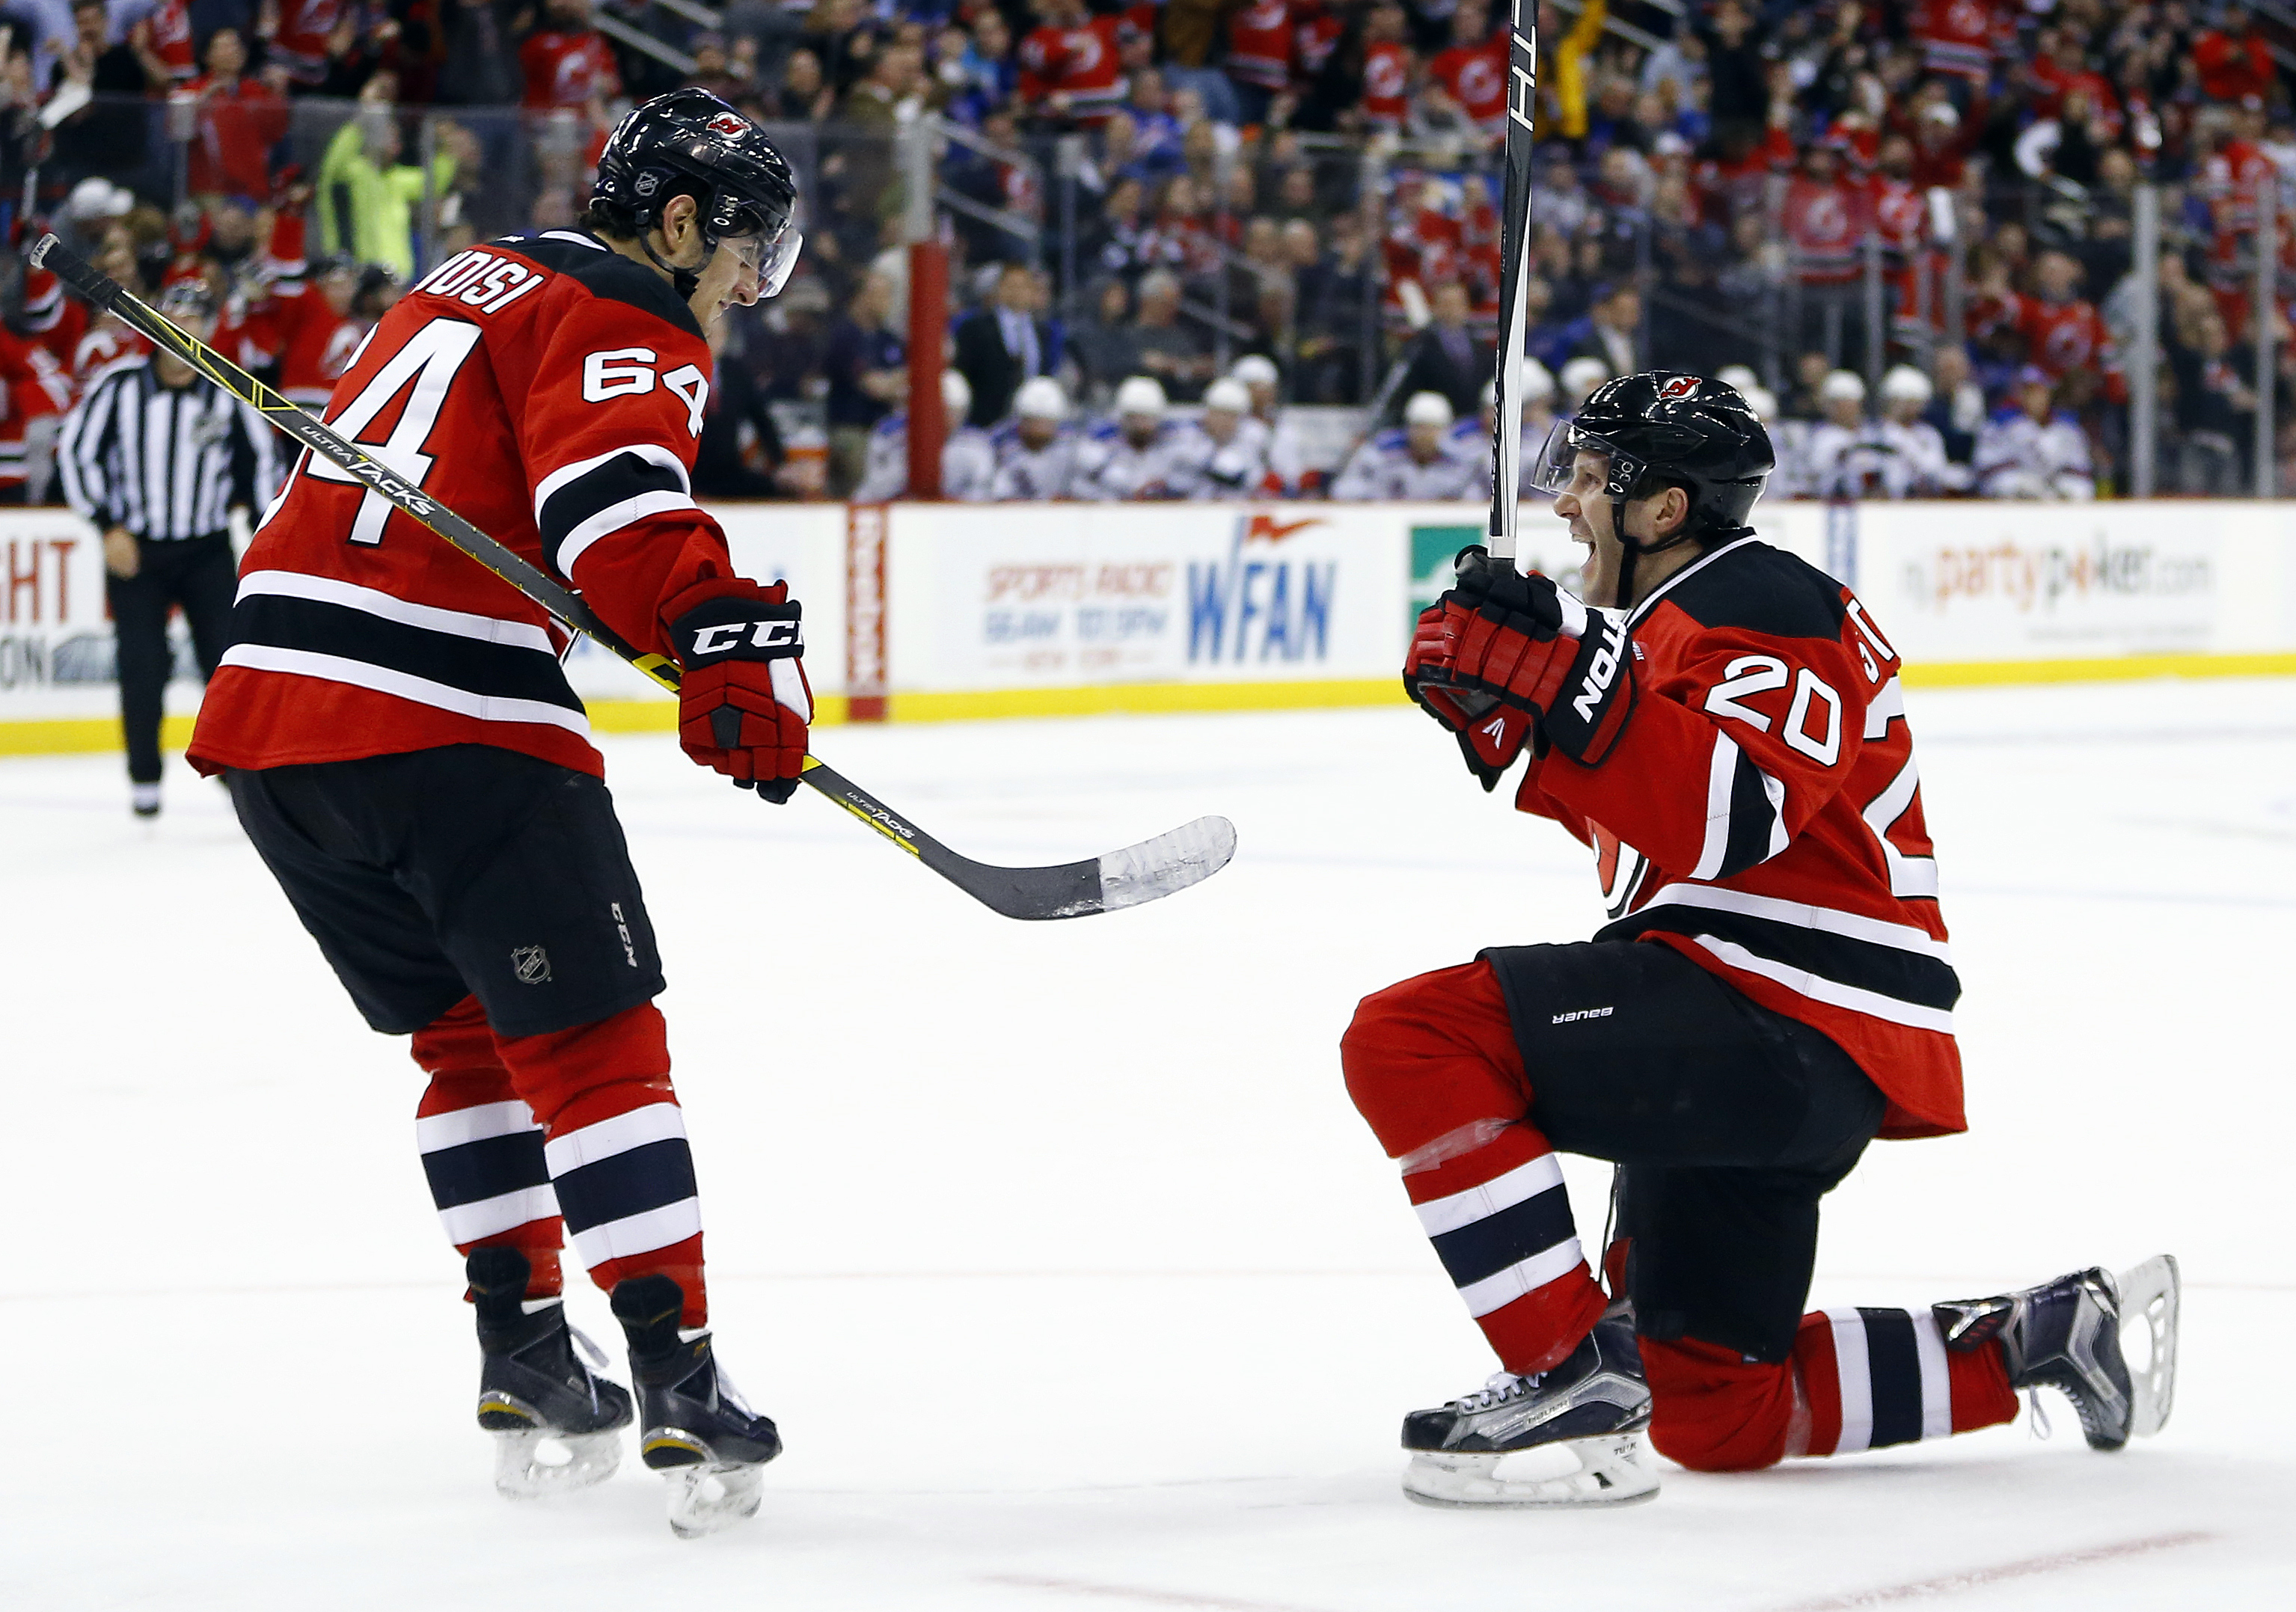 New Jersey Devils right wing Lee Stempniak (20) and center Joseph Blandisi (64) celebrate a goal by Stempniak's goal against the New York Rangers during the second period of an NHL hockey game, Tuesday, Feb. 23, 2016, in Newark, N.J. (AP Photo/Julio Corte